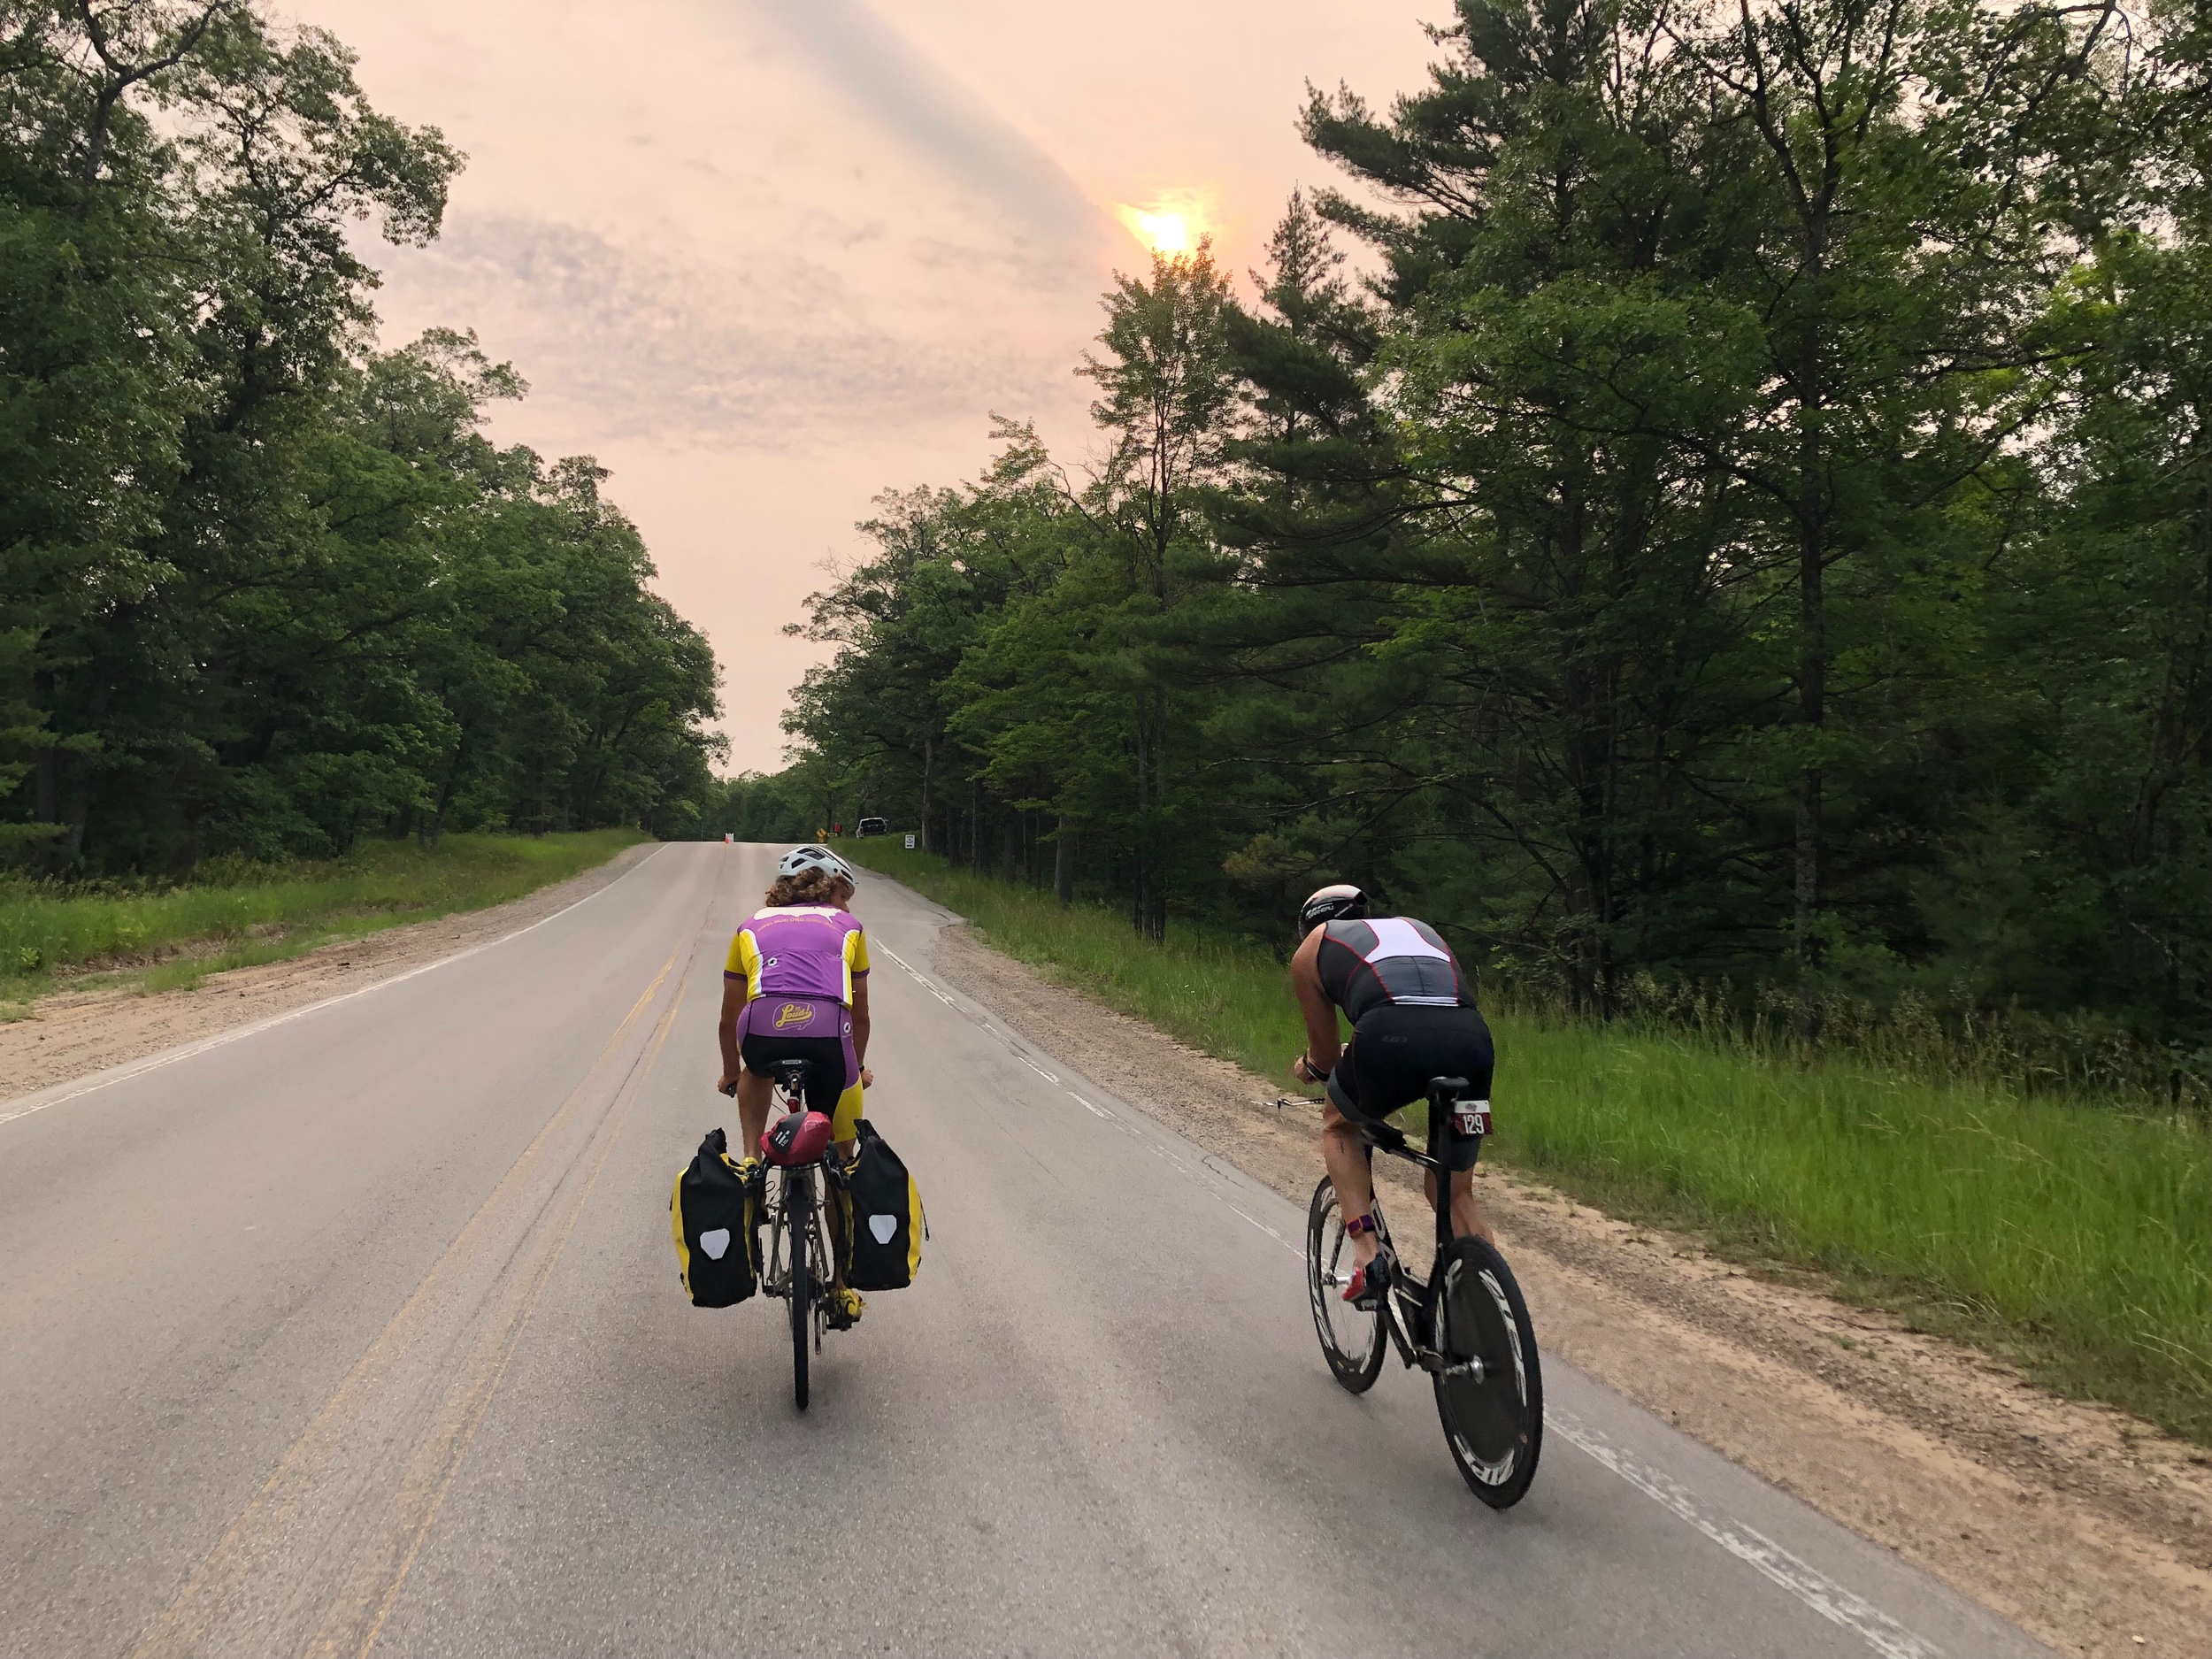 We temporarily joined a bike race outside of Traverse City